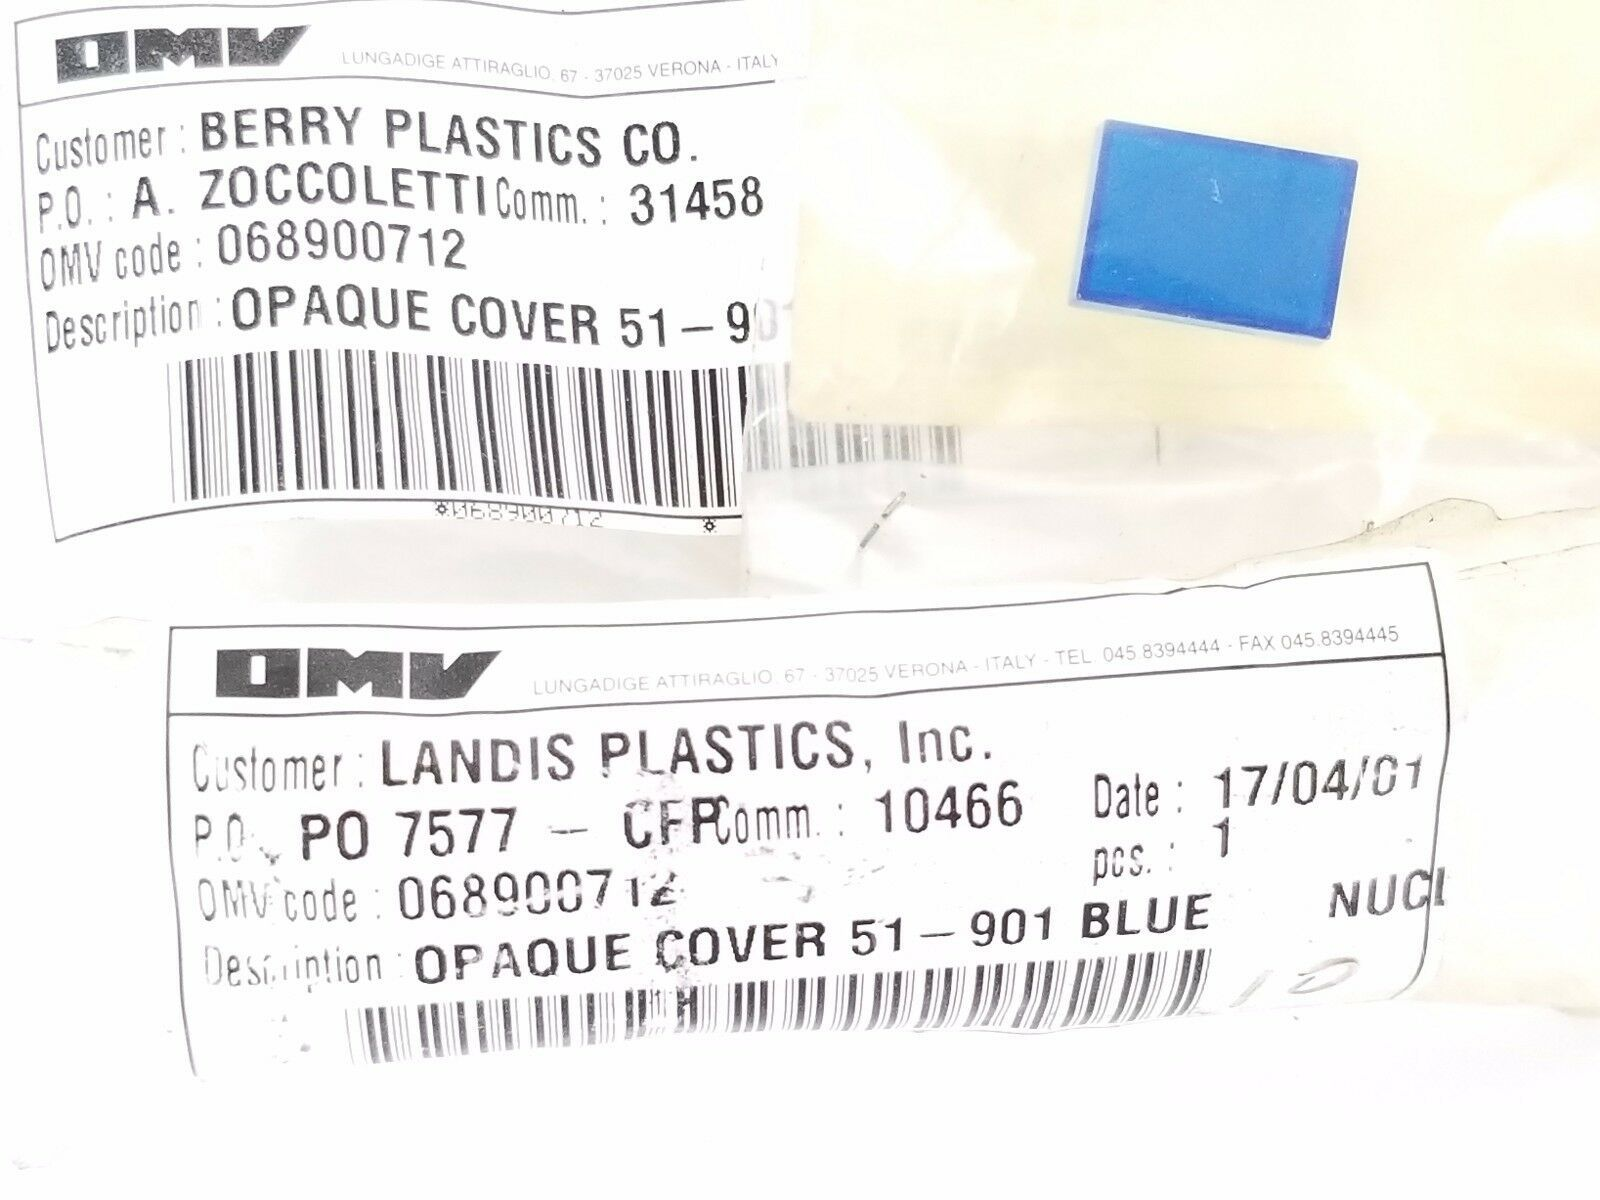 LOT OF 3 NEW OMV 068900712 OPAQUE COVER 51-901 BLUE